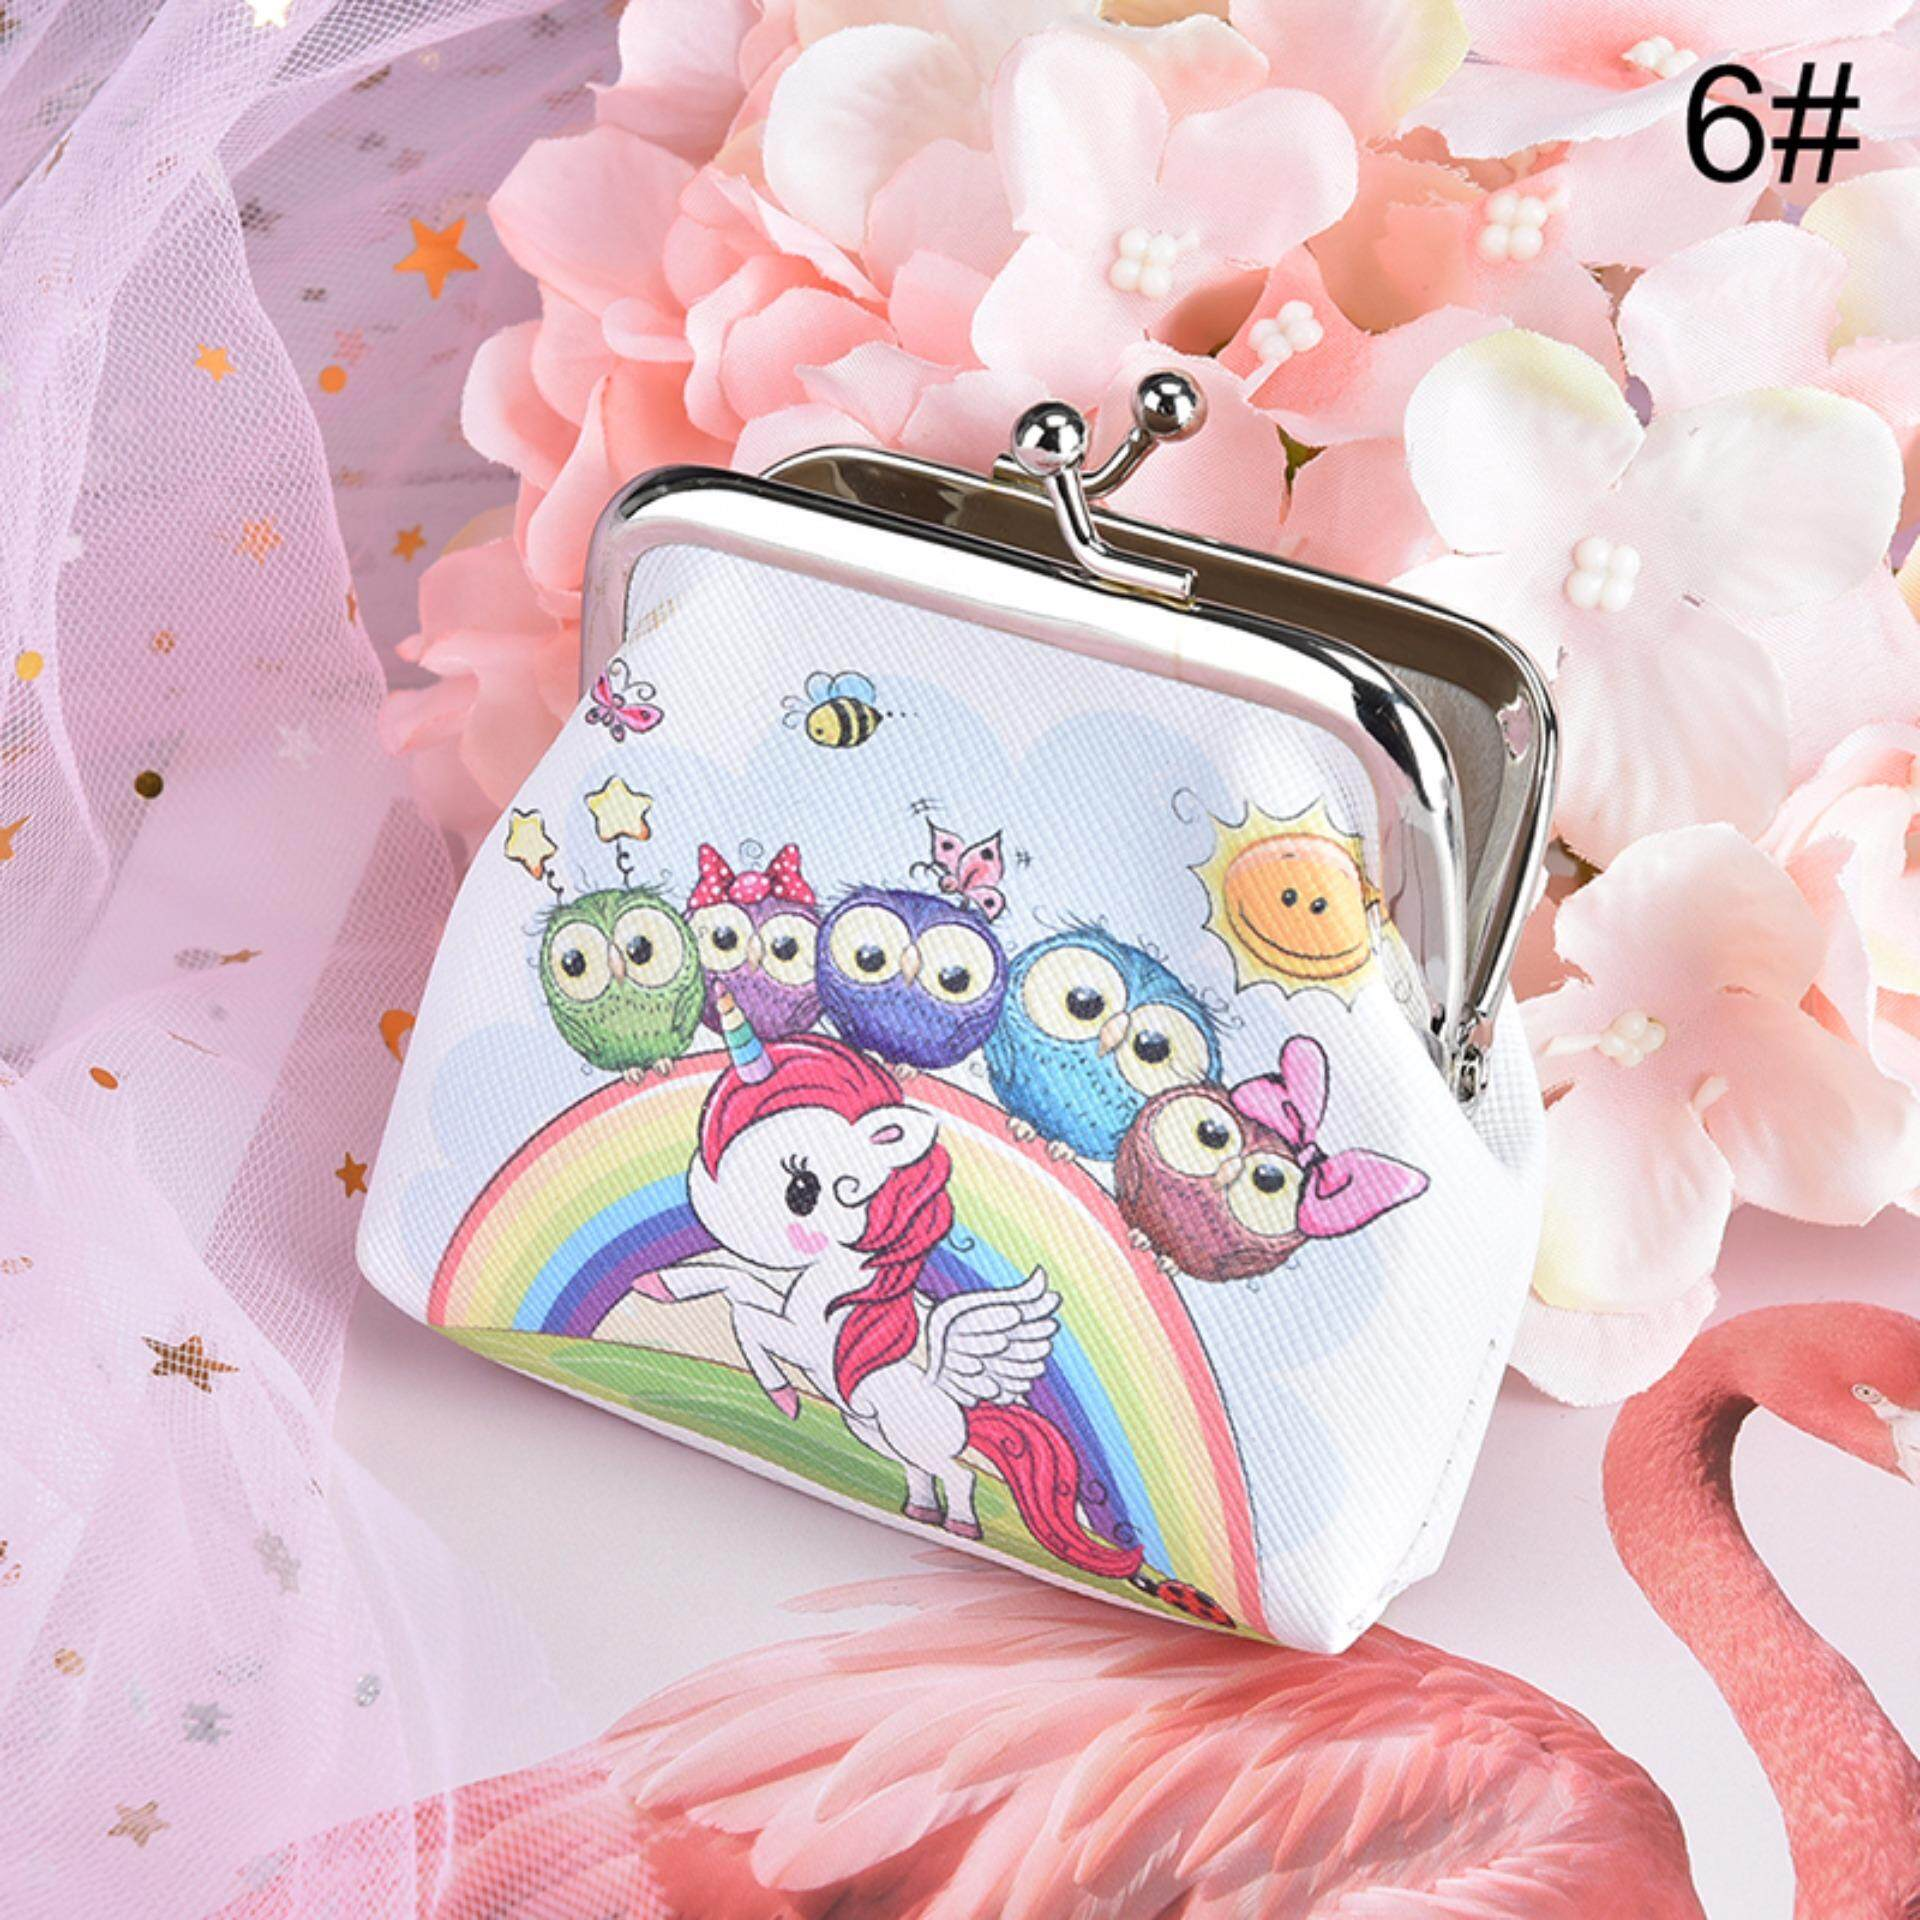 3d Mini Printing Unicorn Travel Wallet Ladies Key Holder Cosmetic Bag By The Sunflower Mall.